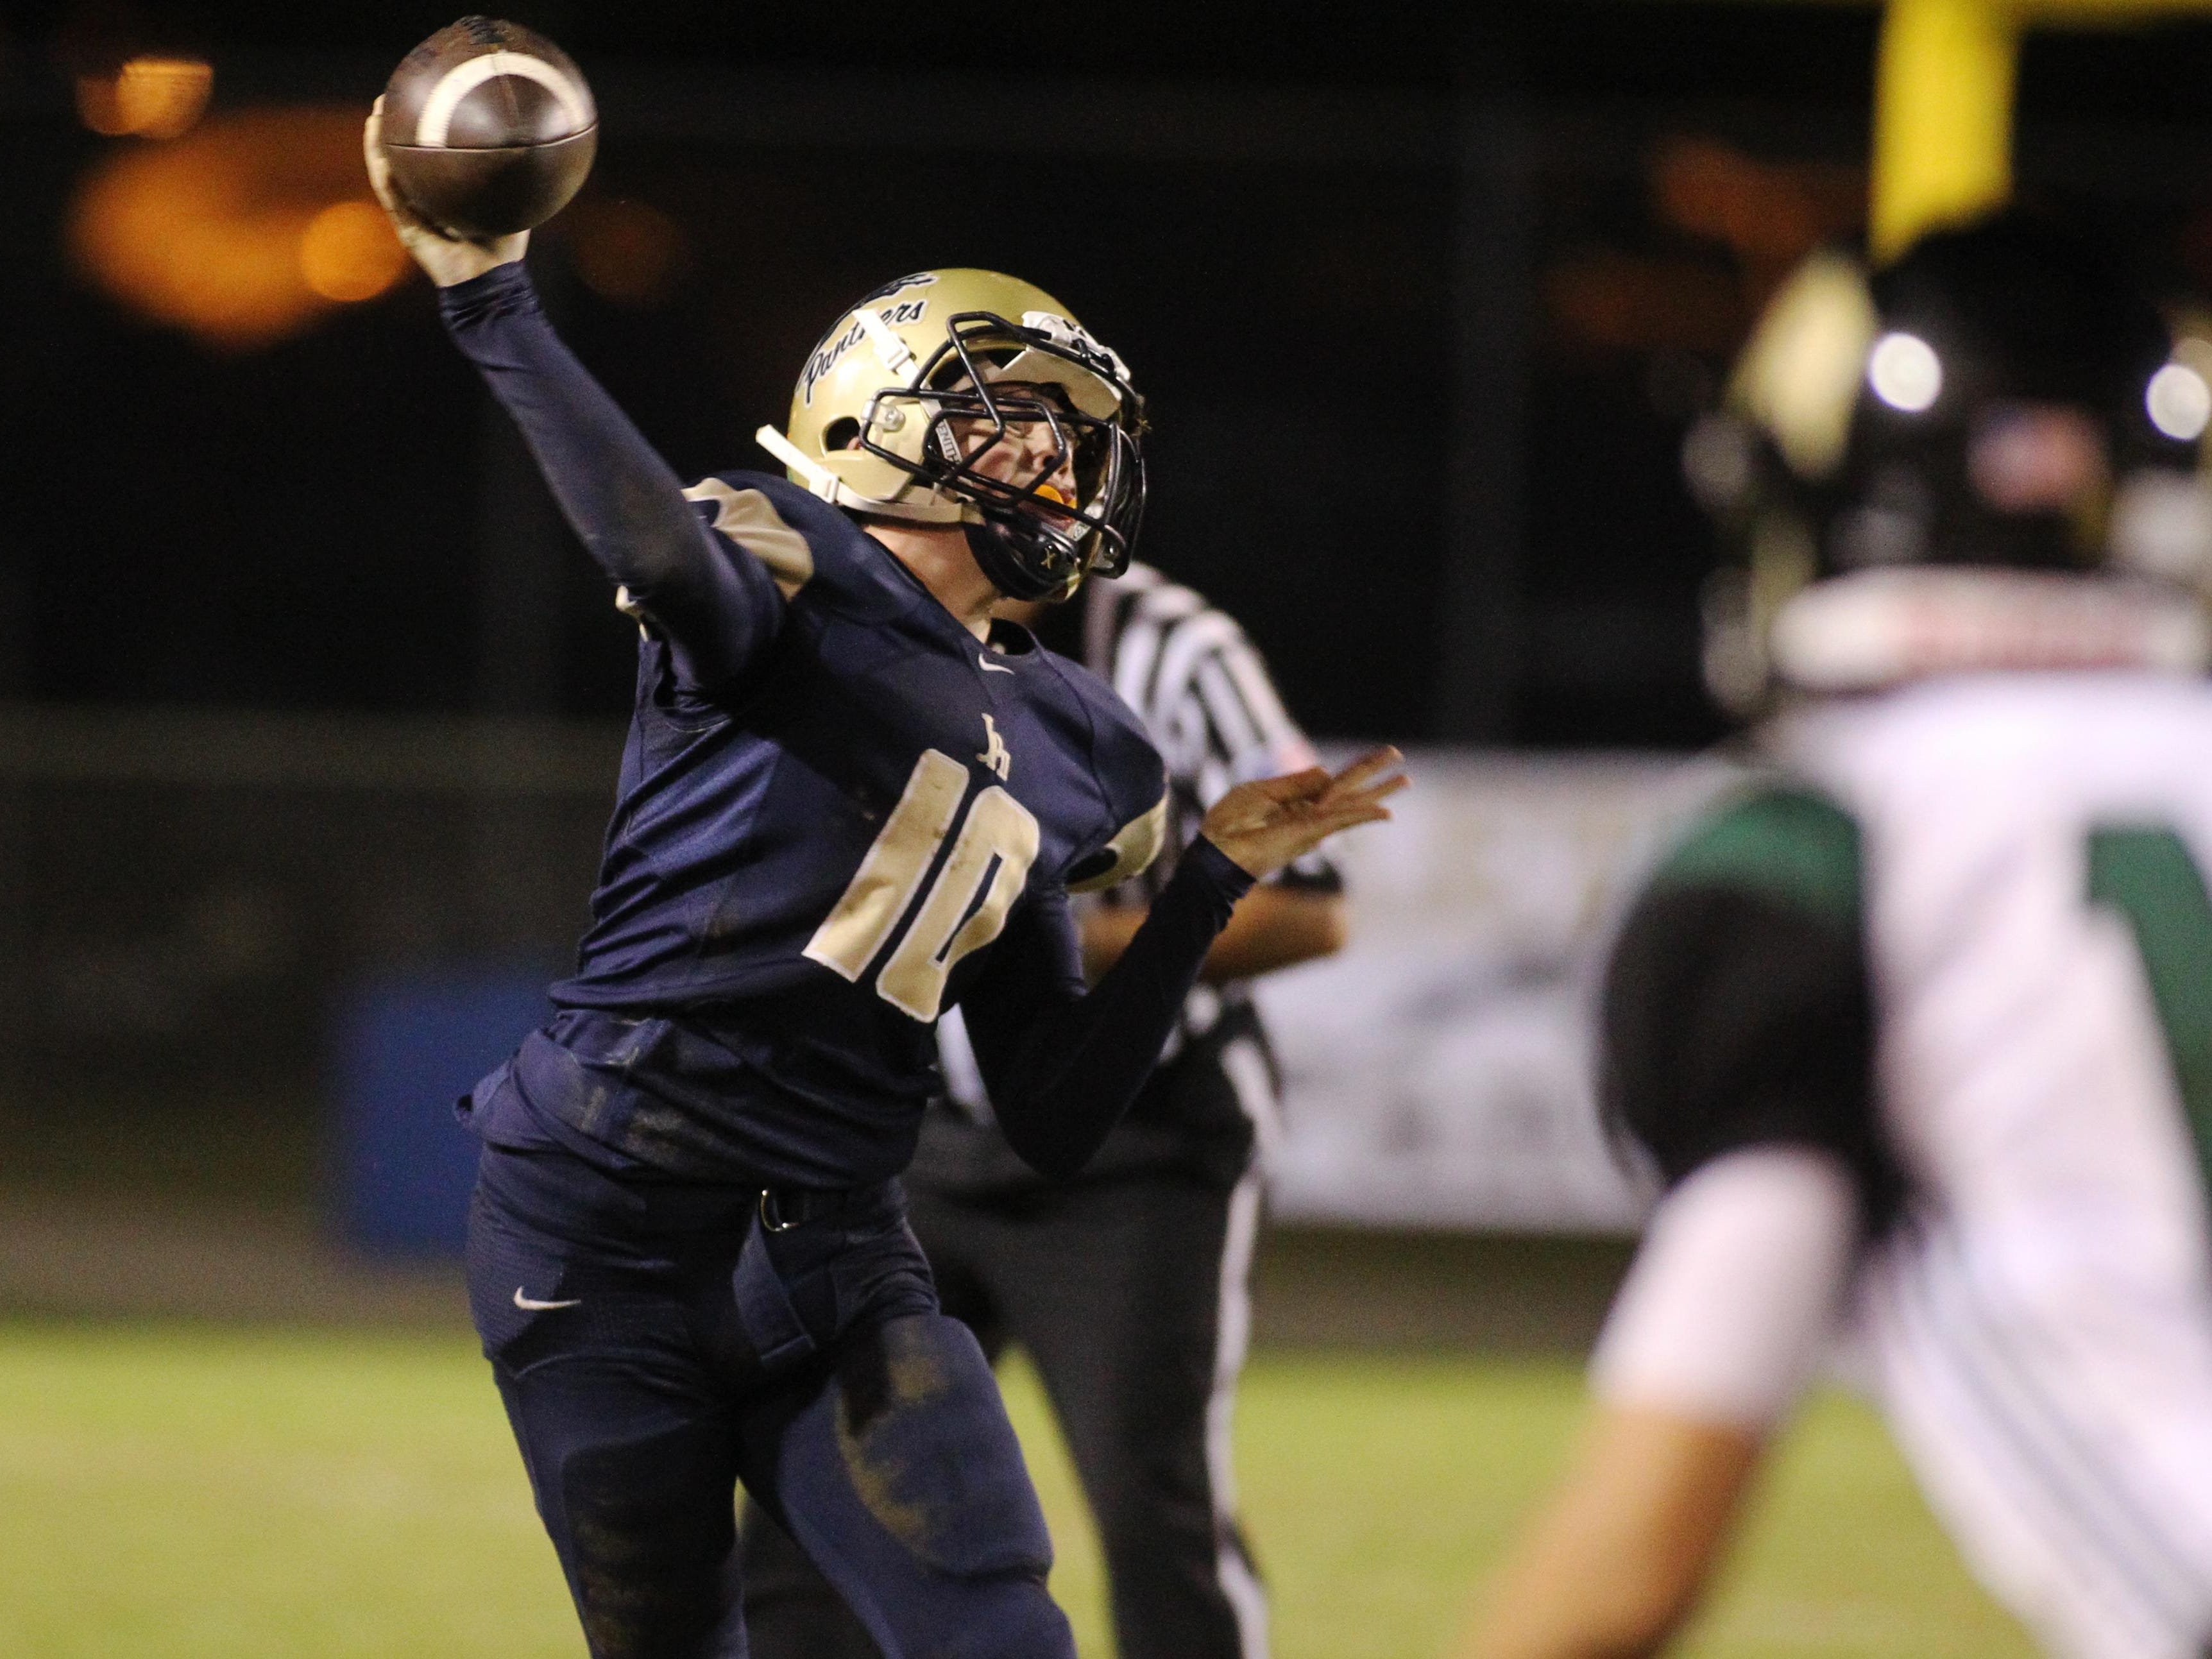 John Paul II quarterback Brian Woodend throws a pass in the championship game of the North Florida Football Conference at Gene Cox Stadium.